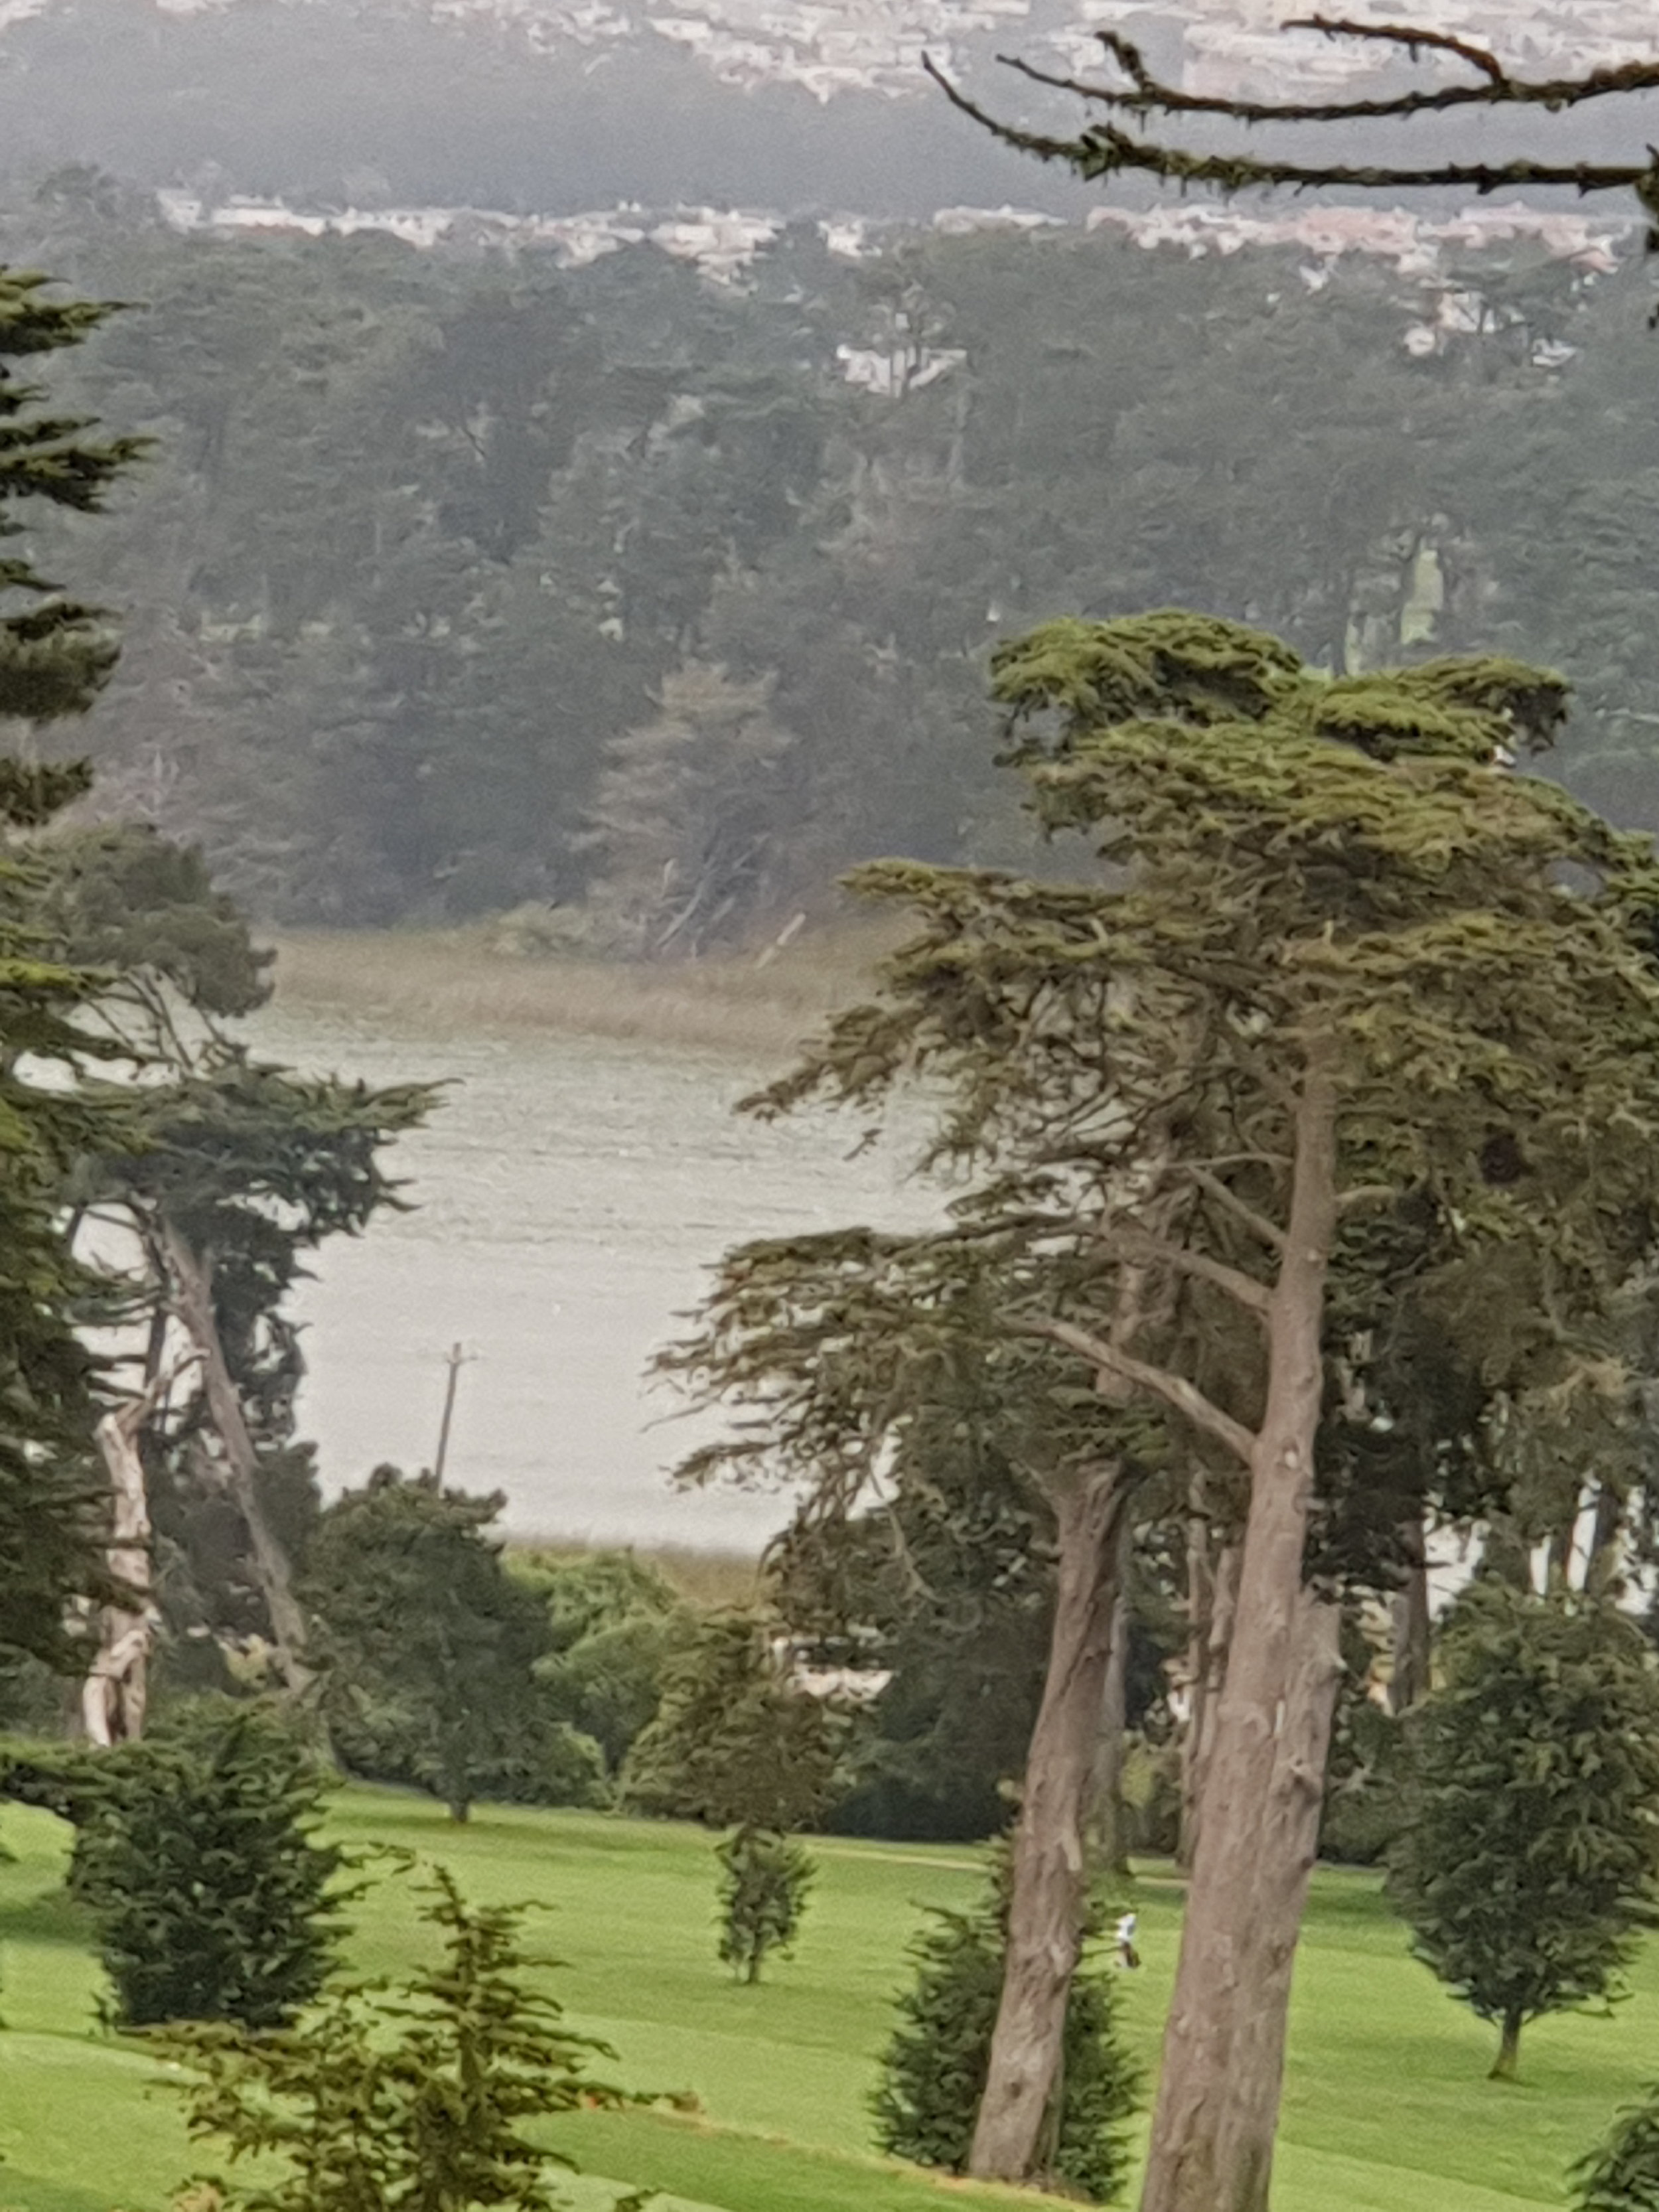 2018 Breathtaking views at 'The Olympic Club' Lake Course '